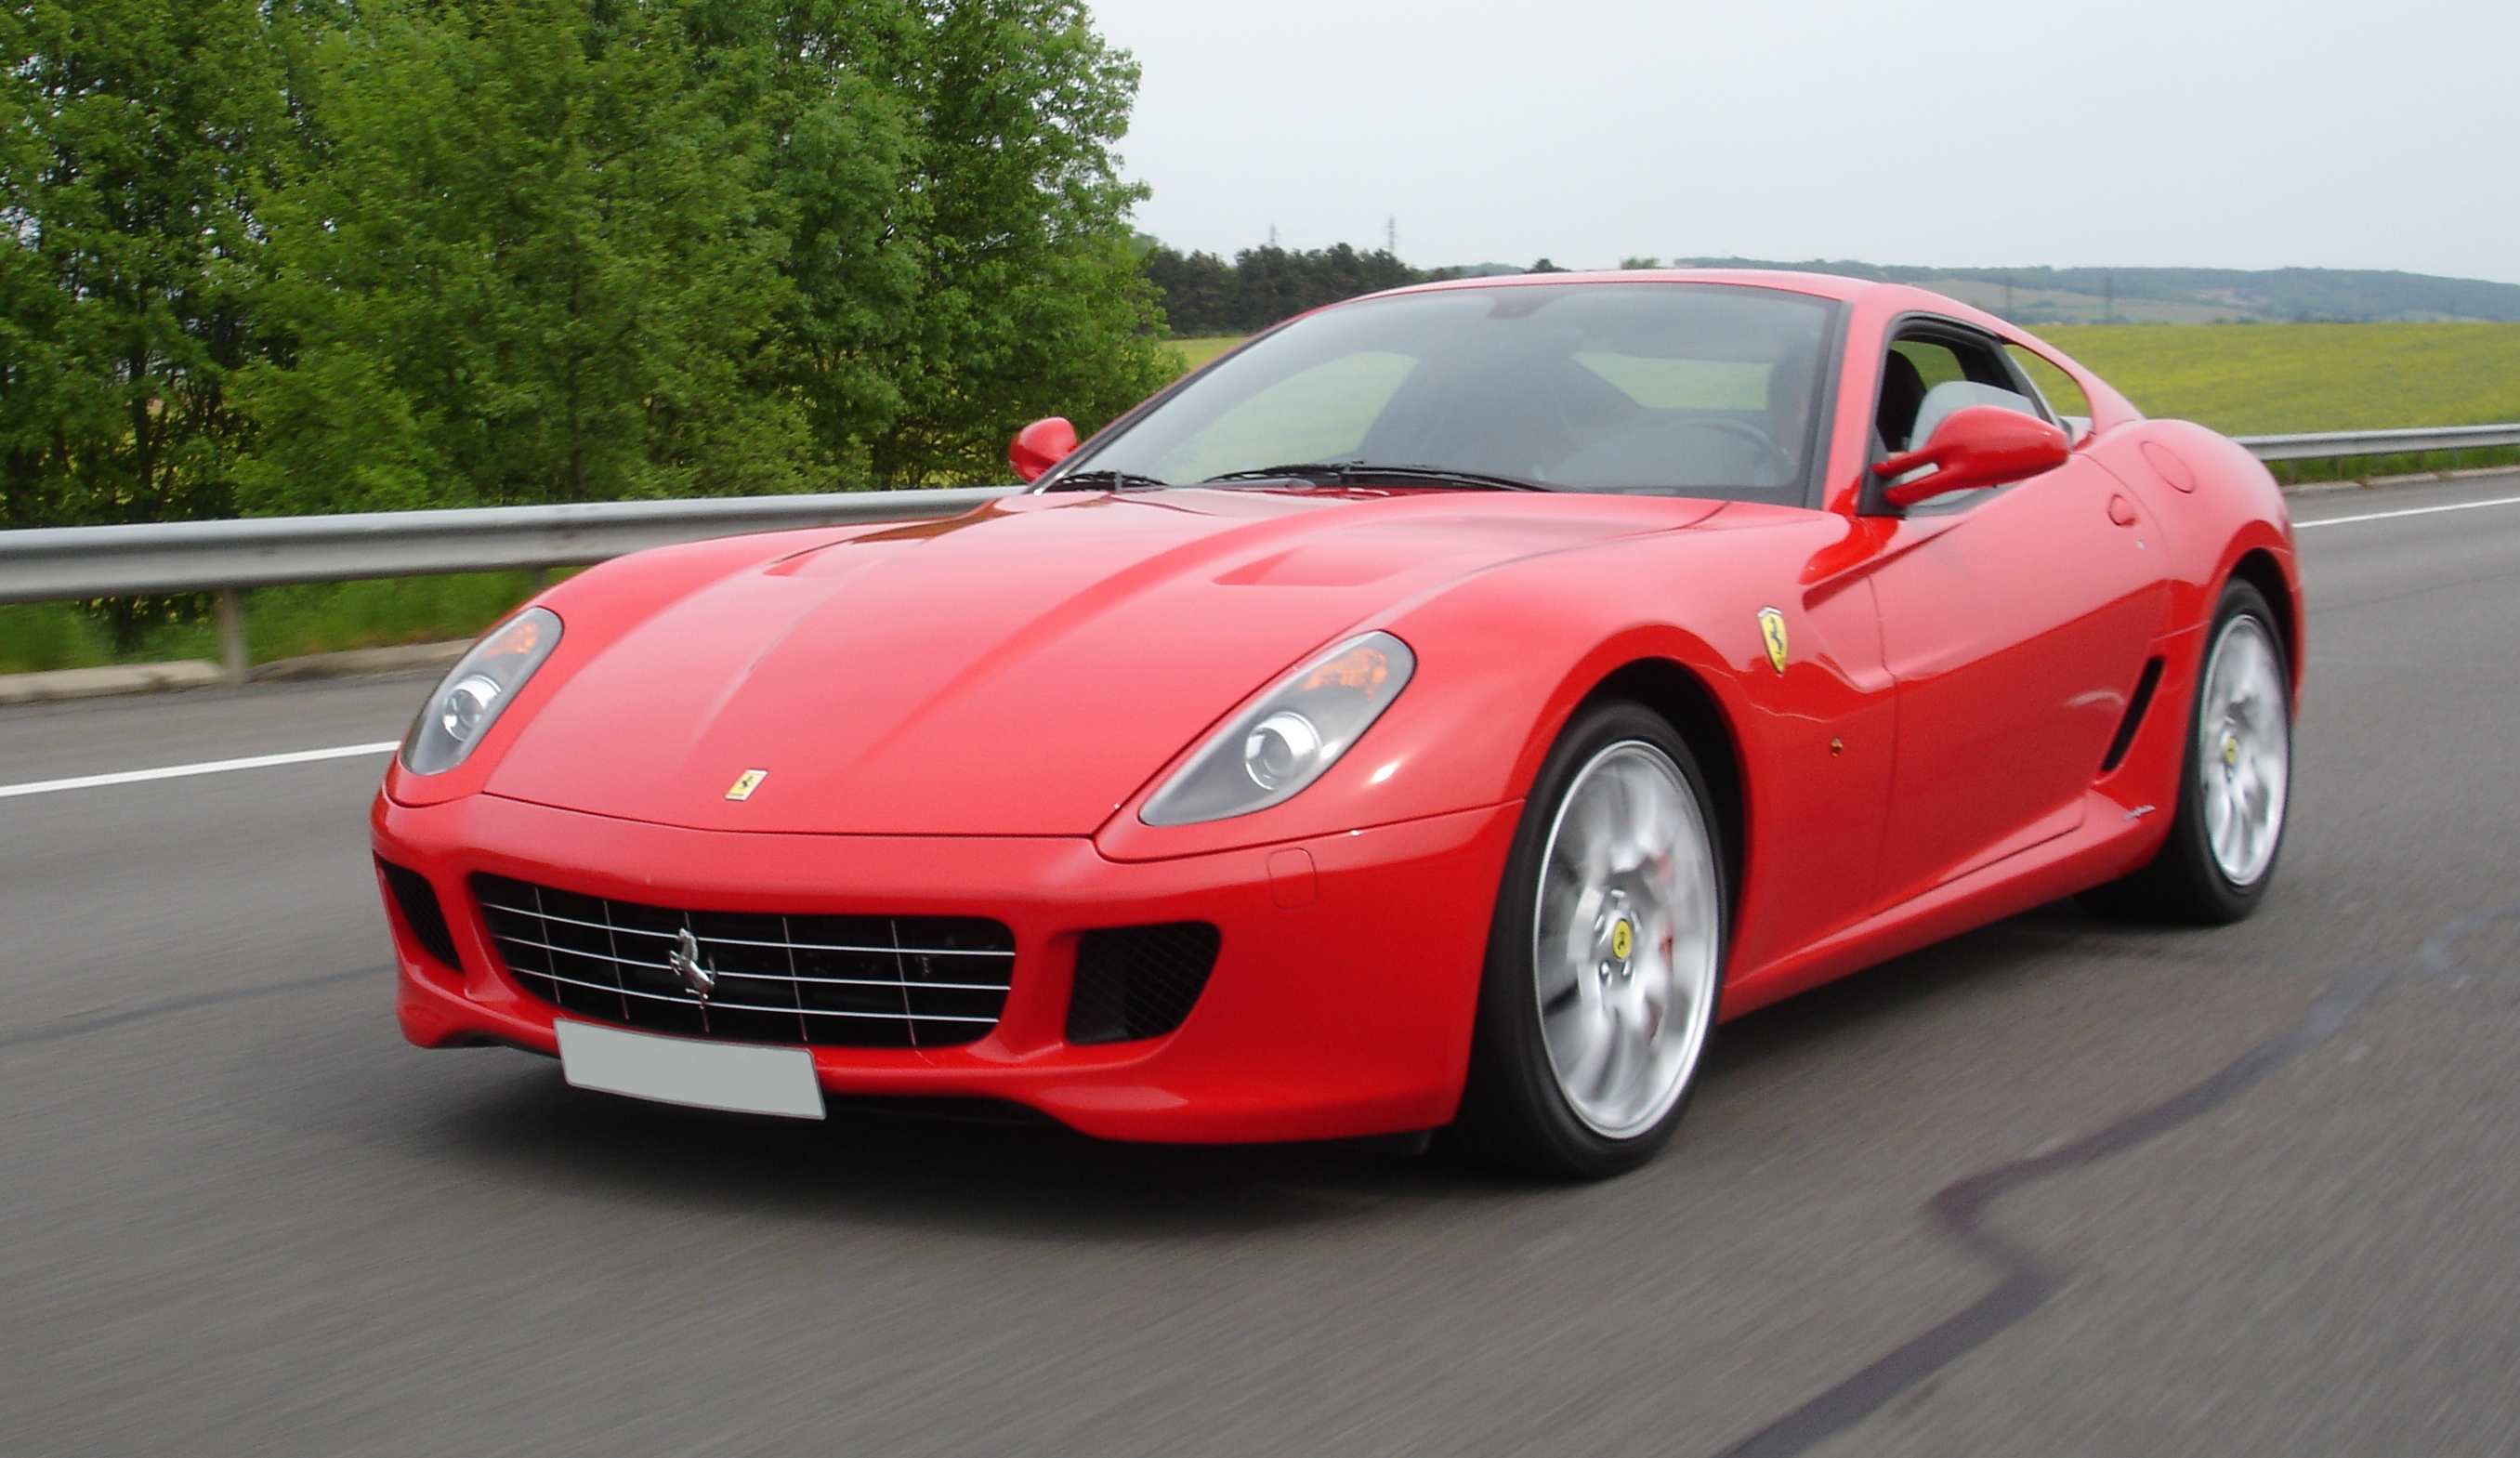 From California, AdamCalifornia reporting about the Ferrari California